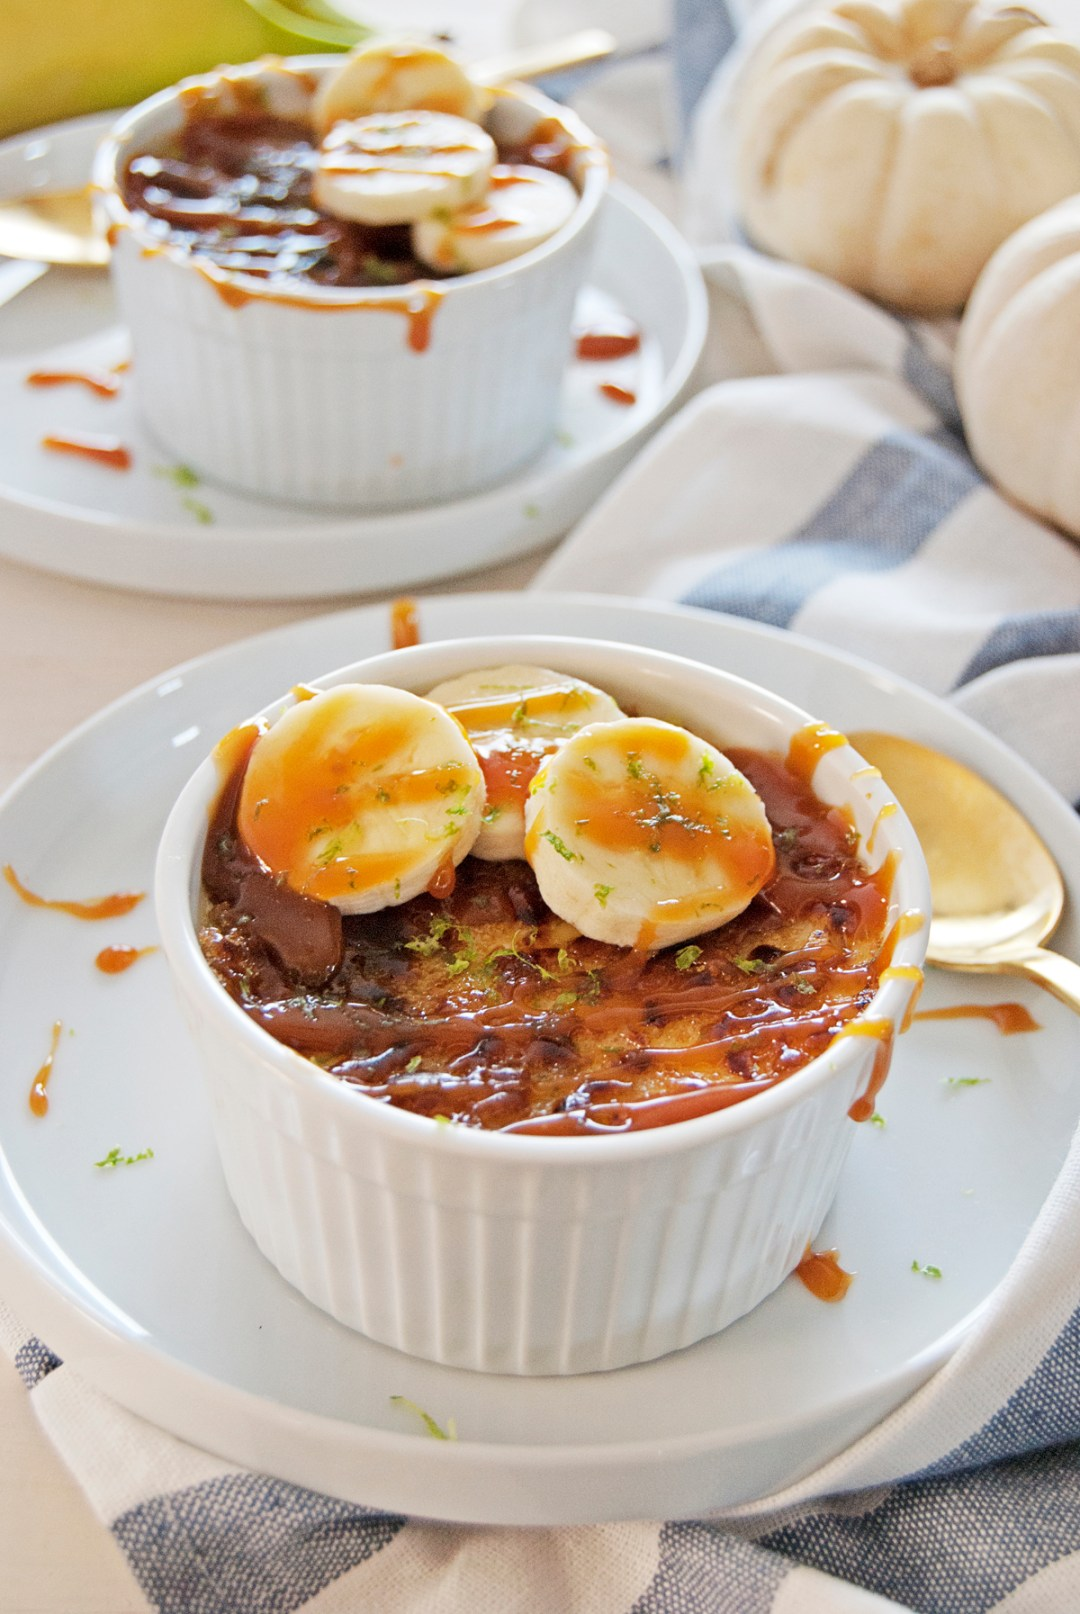 This banana creme brulee features a creamy creme brulee base with fresh bananas and a rum caramel sauce.